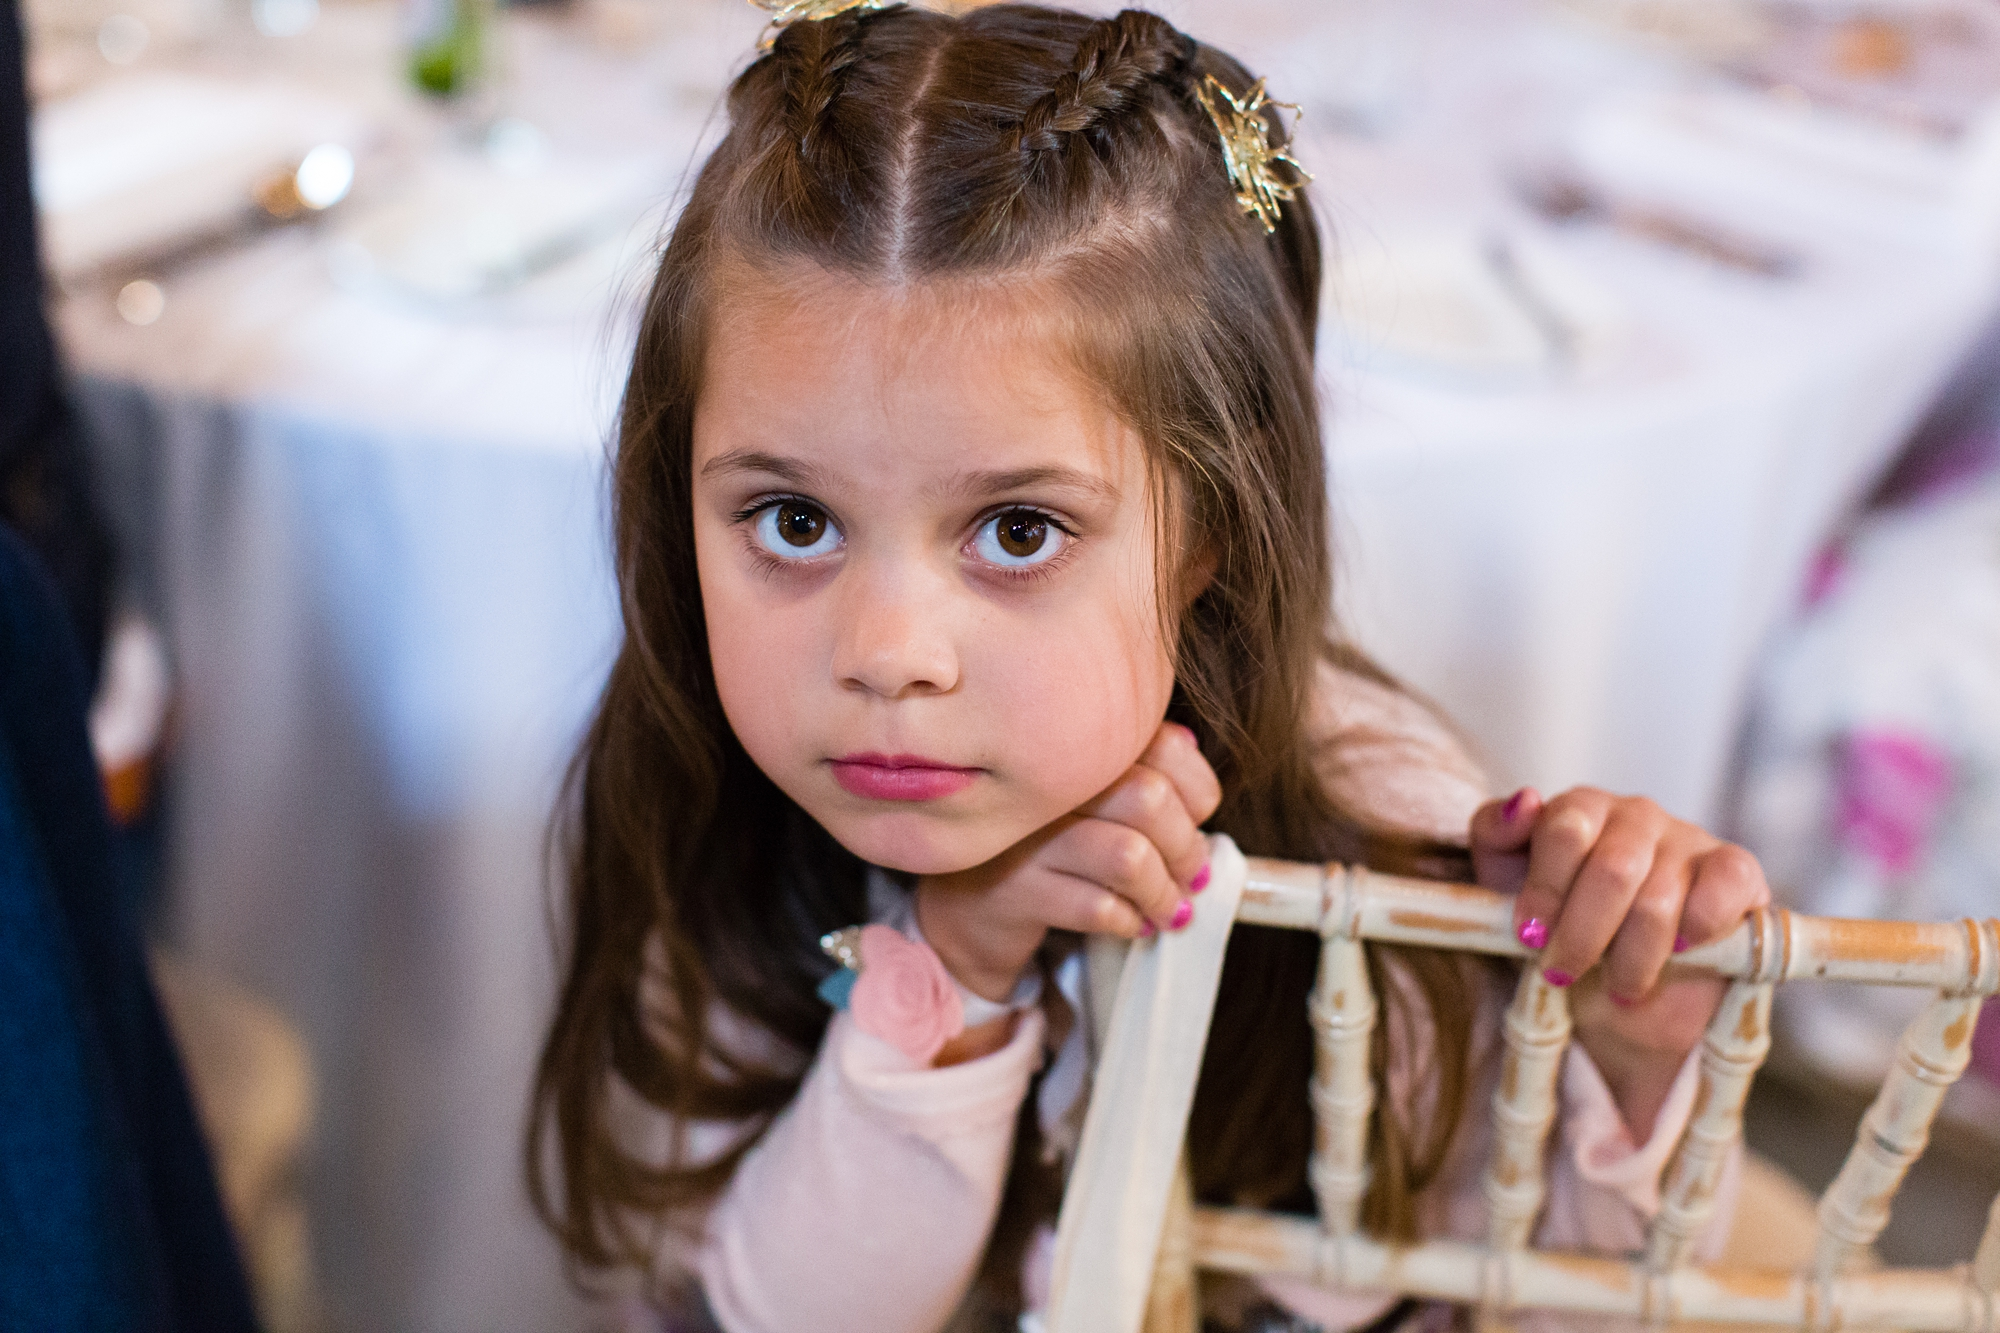 Cute flower girl looking at camera